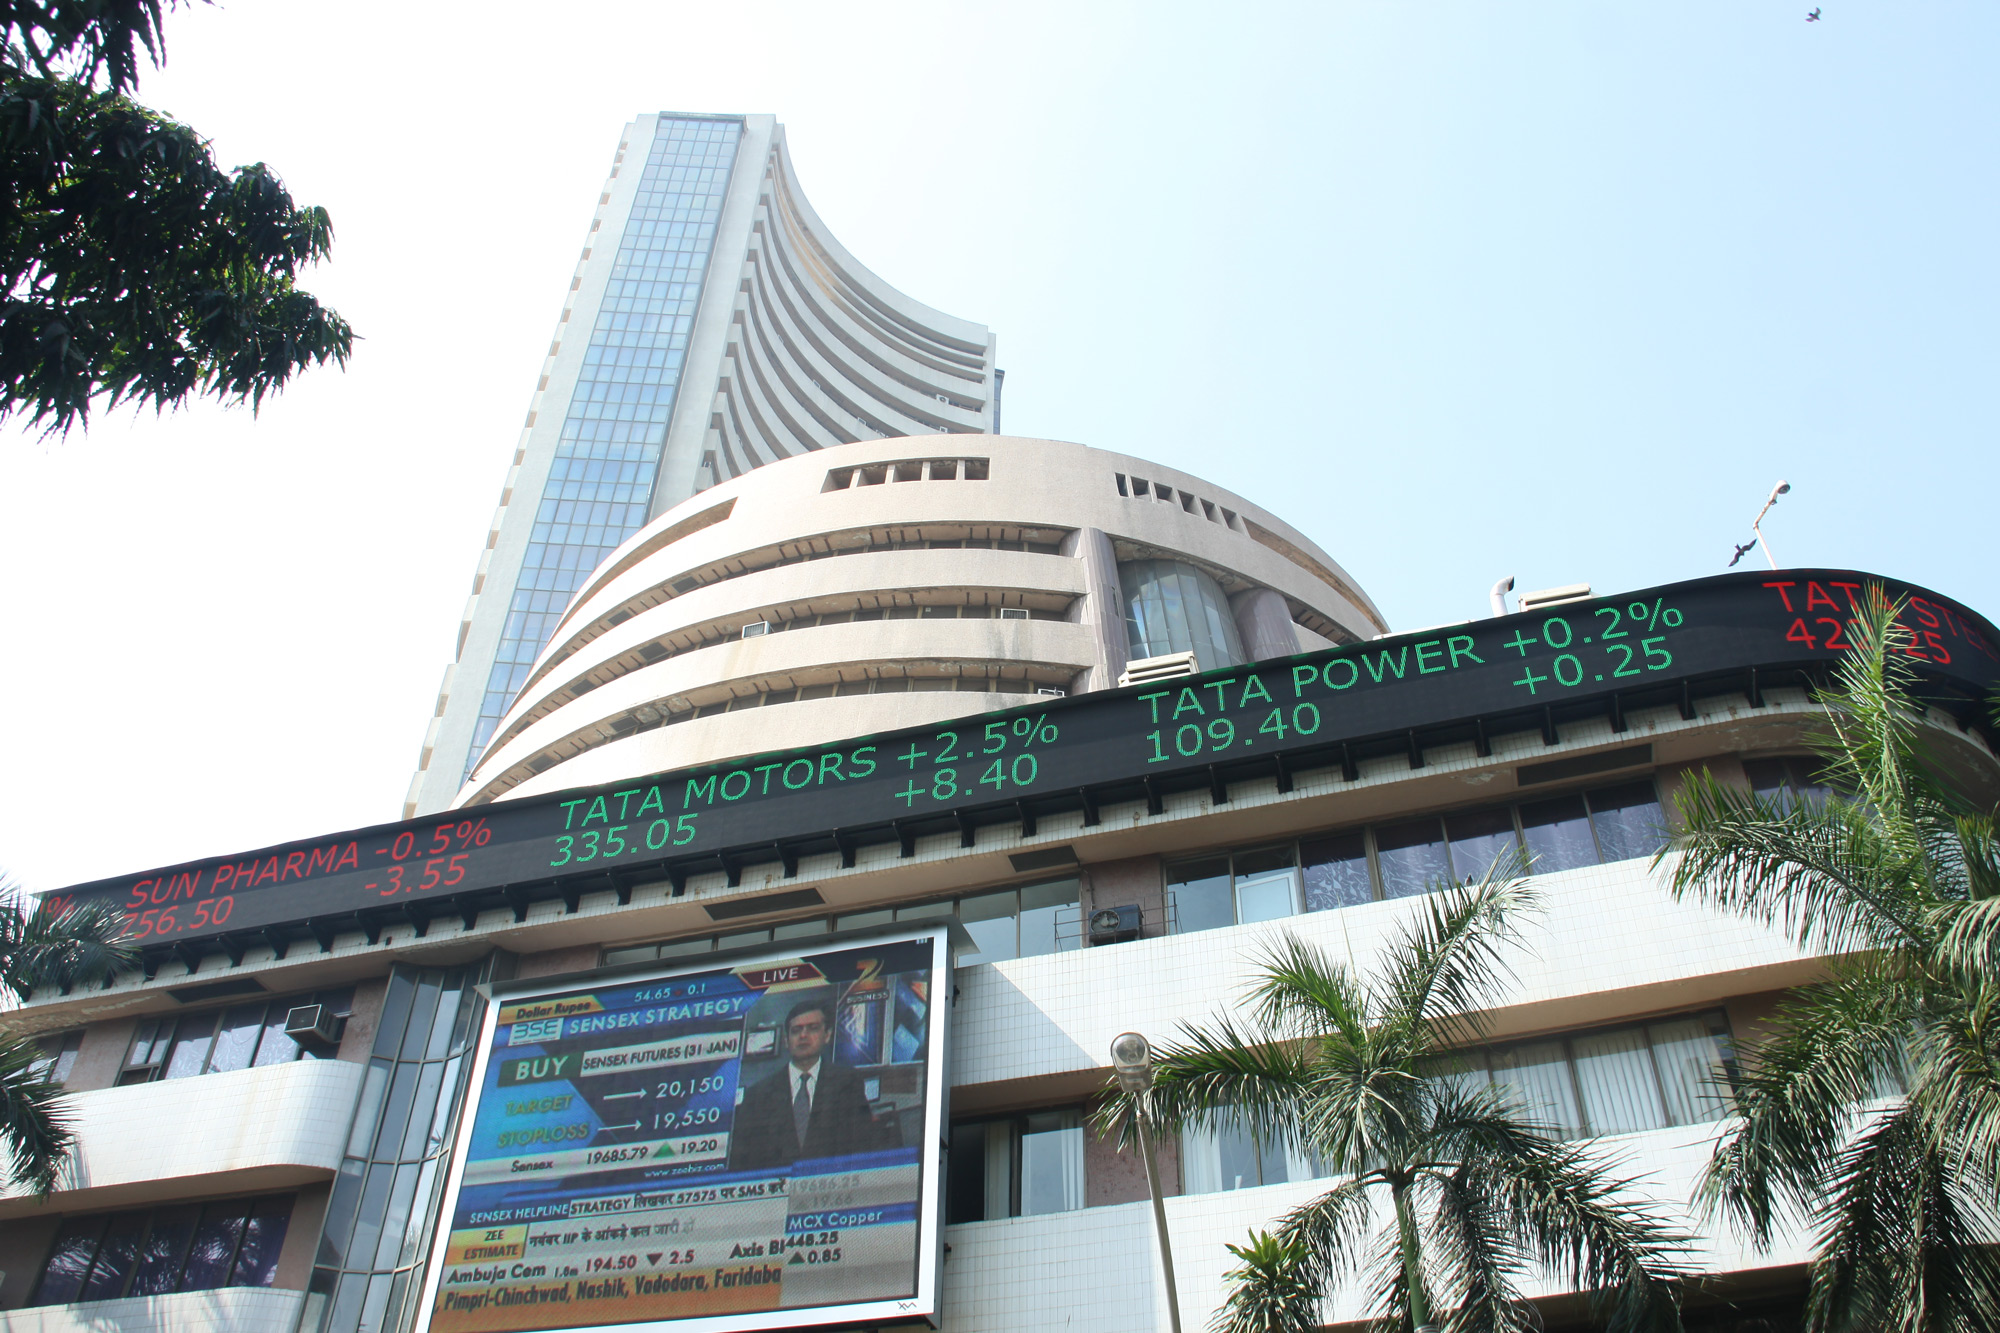 BSE Building at Dalal Street, India, Sensex, NIFTY